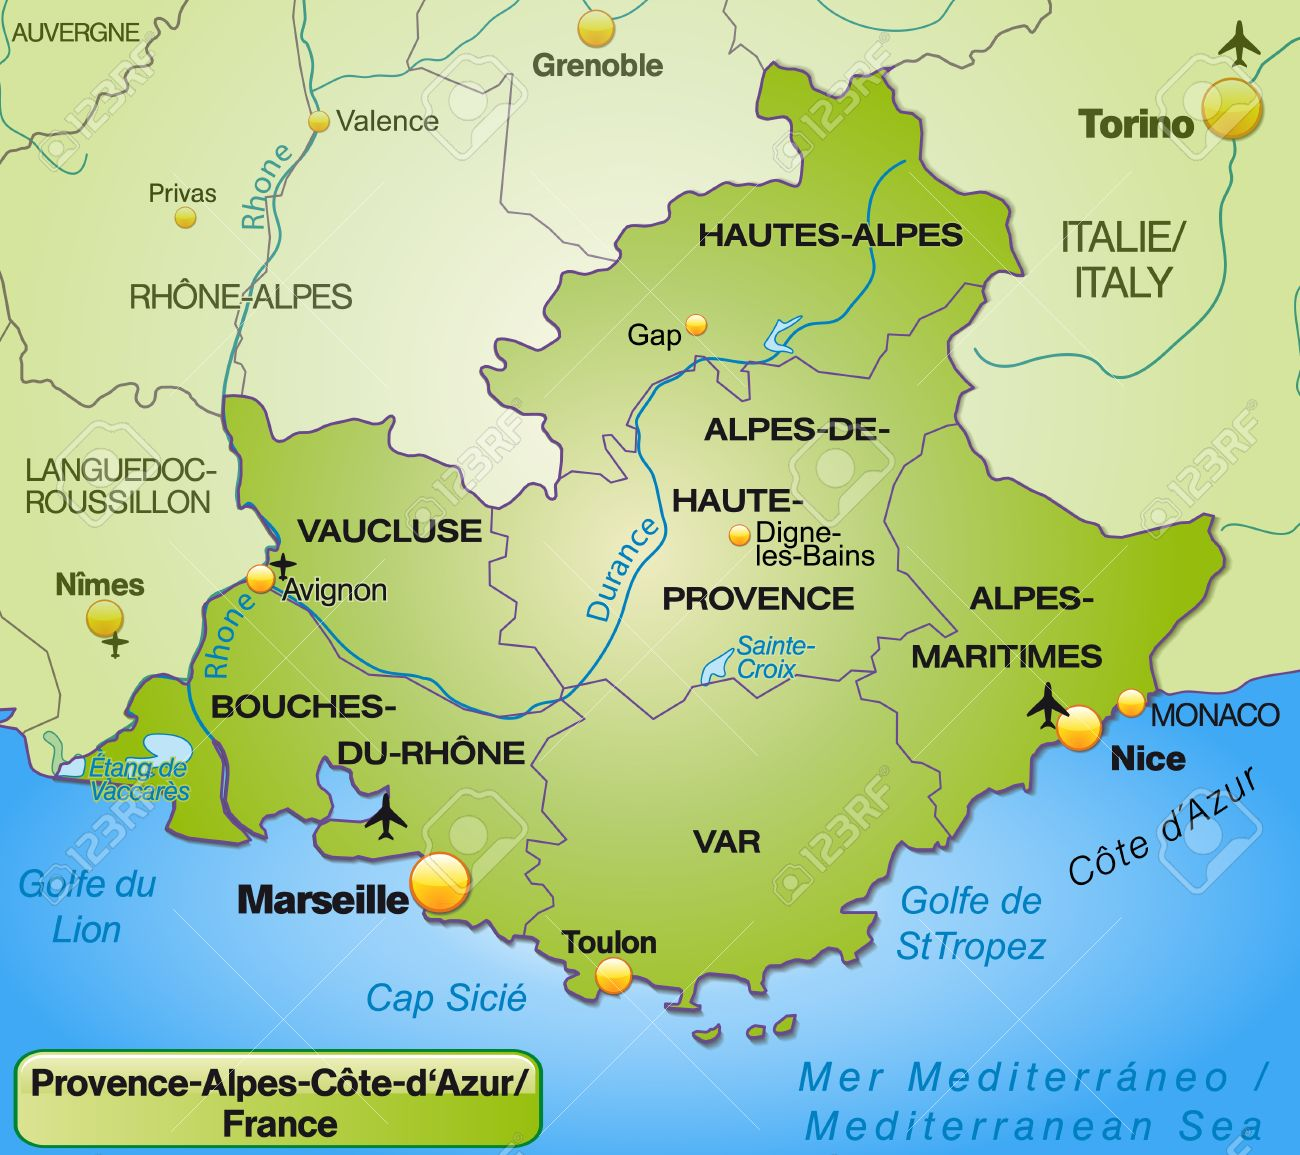 cote d azur karte Map Of Provence Alpes Cote D Azur With Borders In Green Royalty